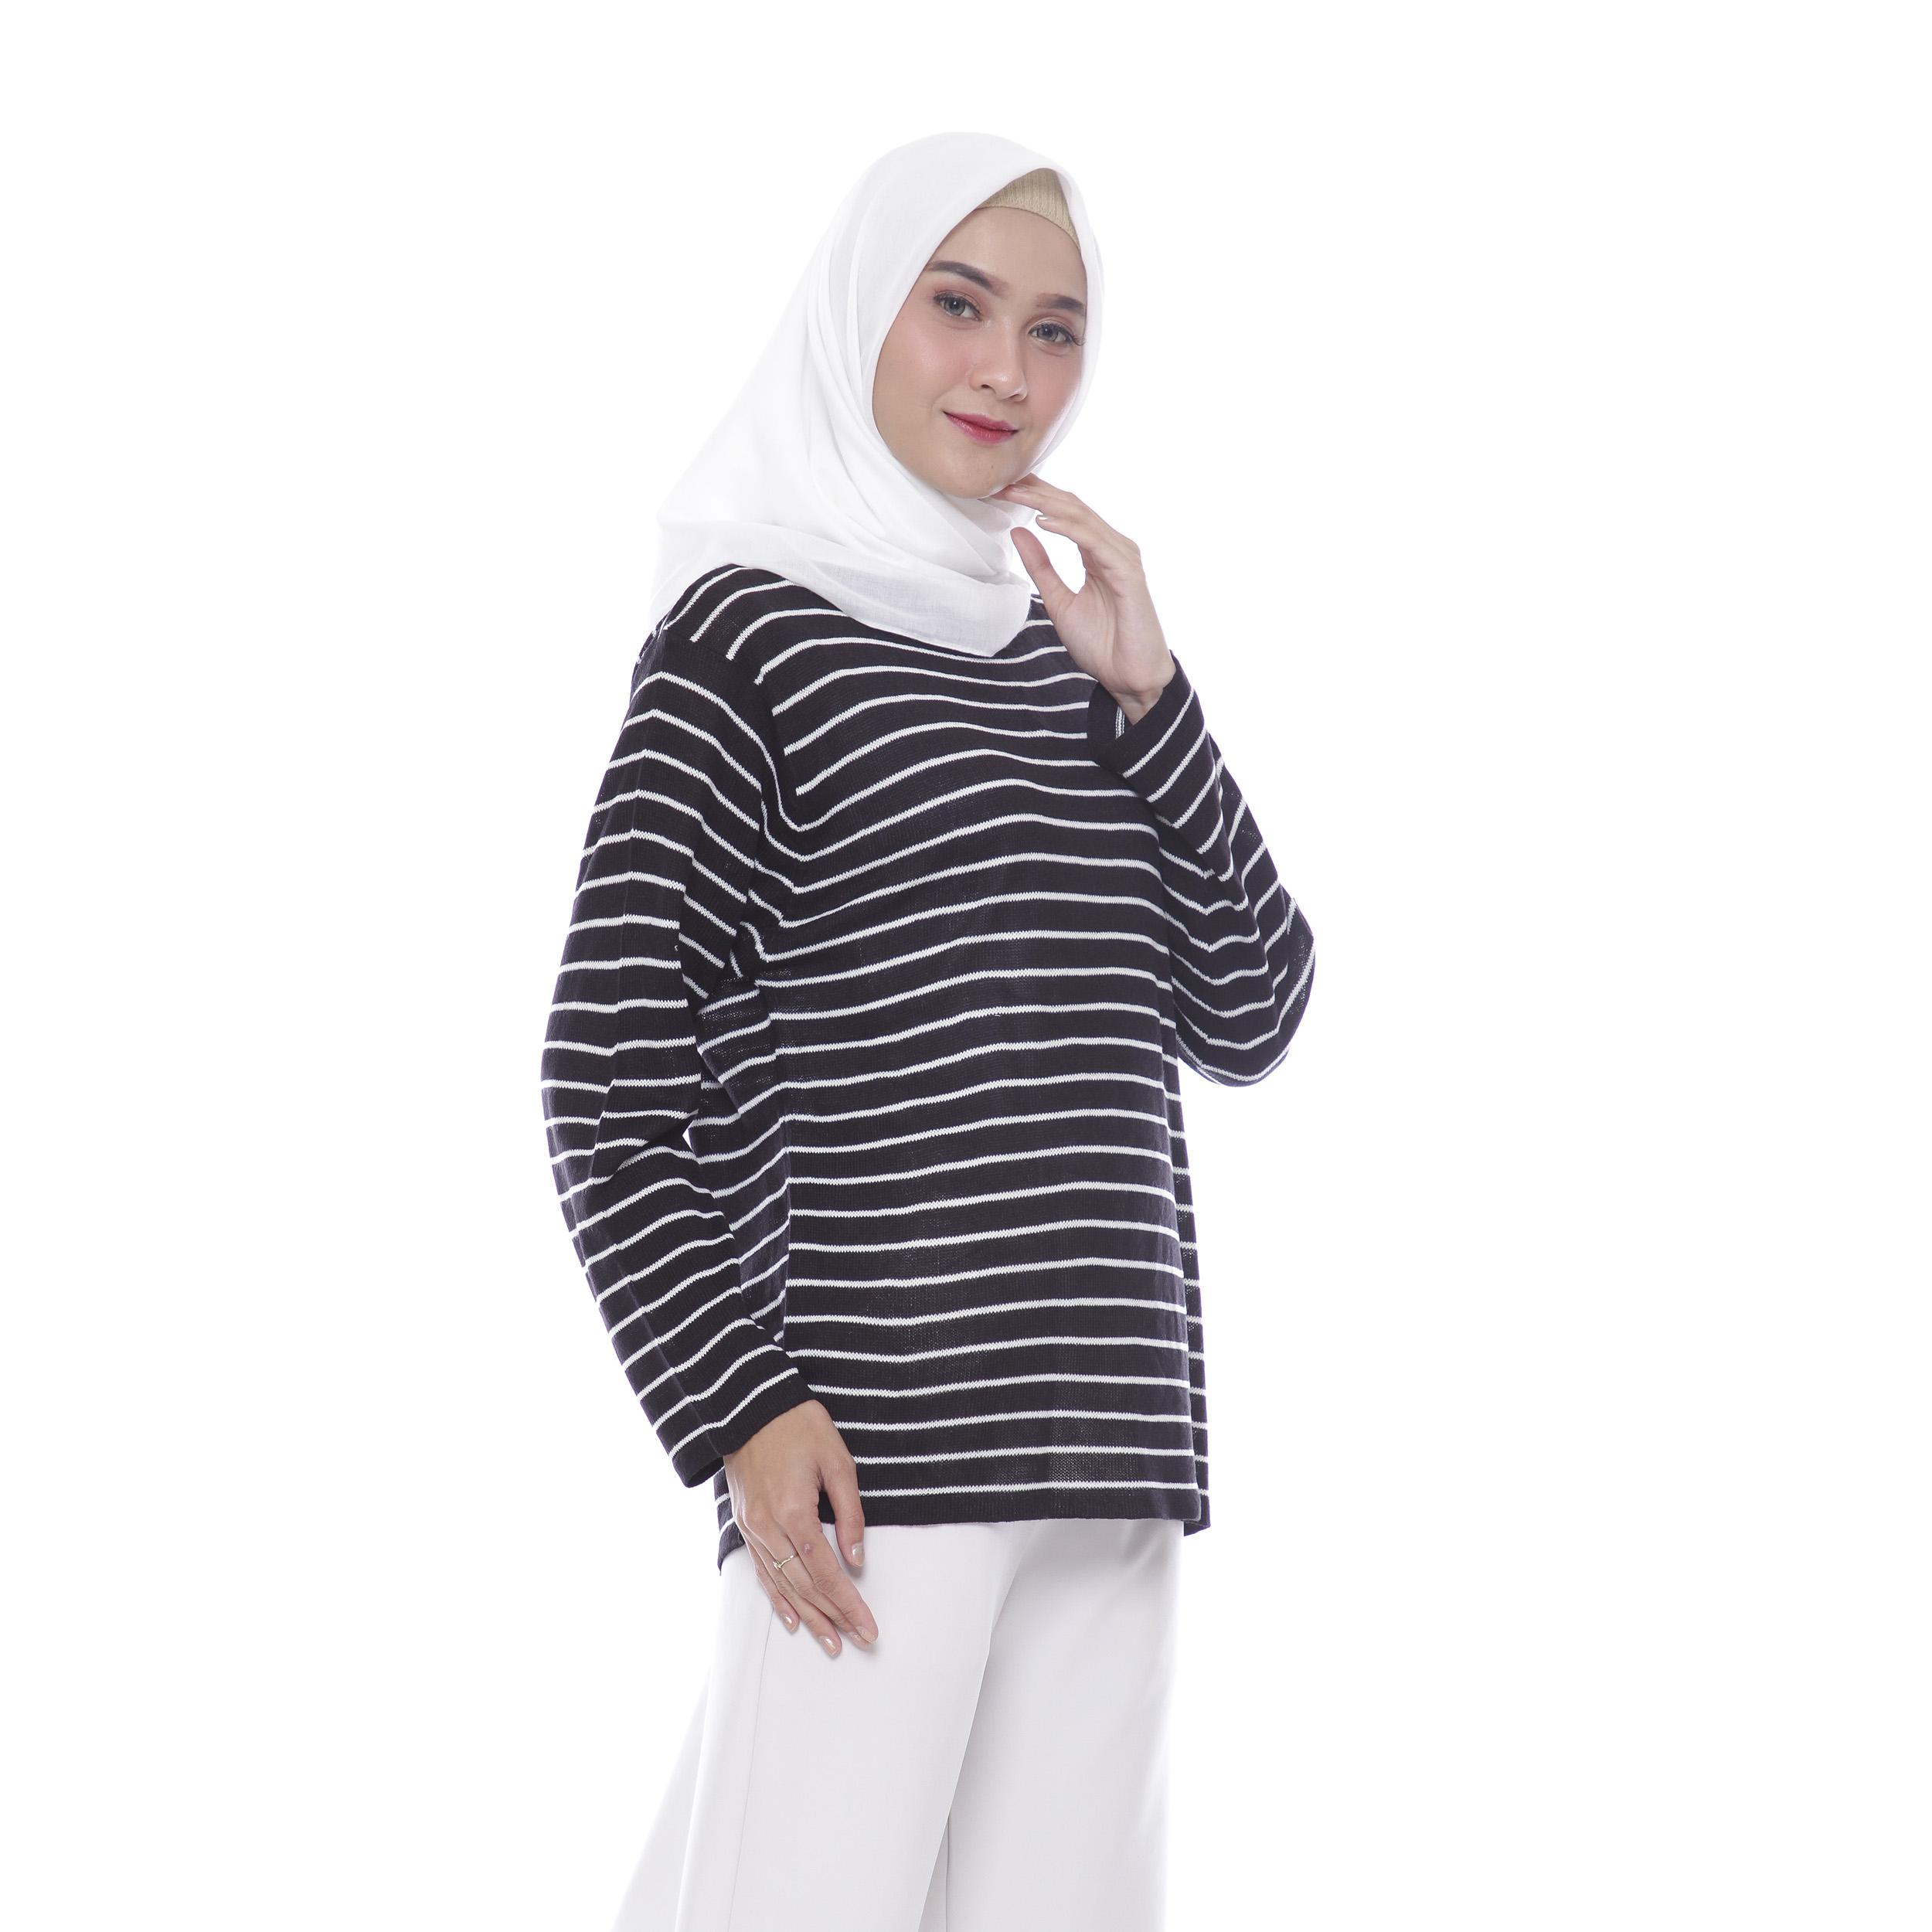 Baju Muslim Sweater Rajut Wanita Carla Stripe Real Pict By Awproject.